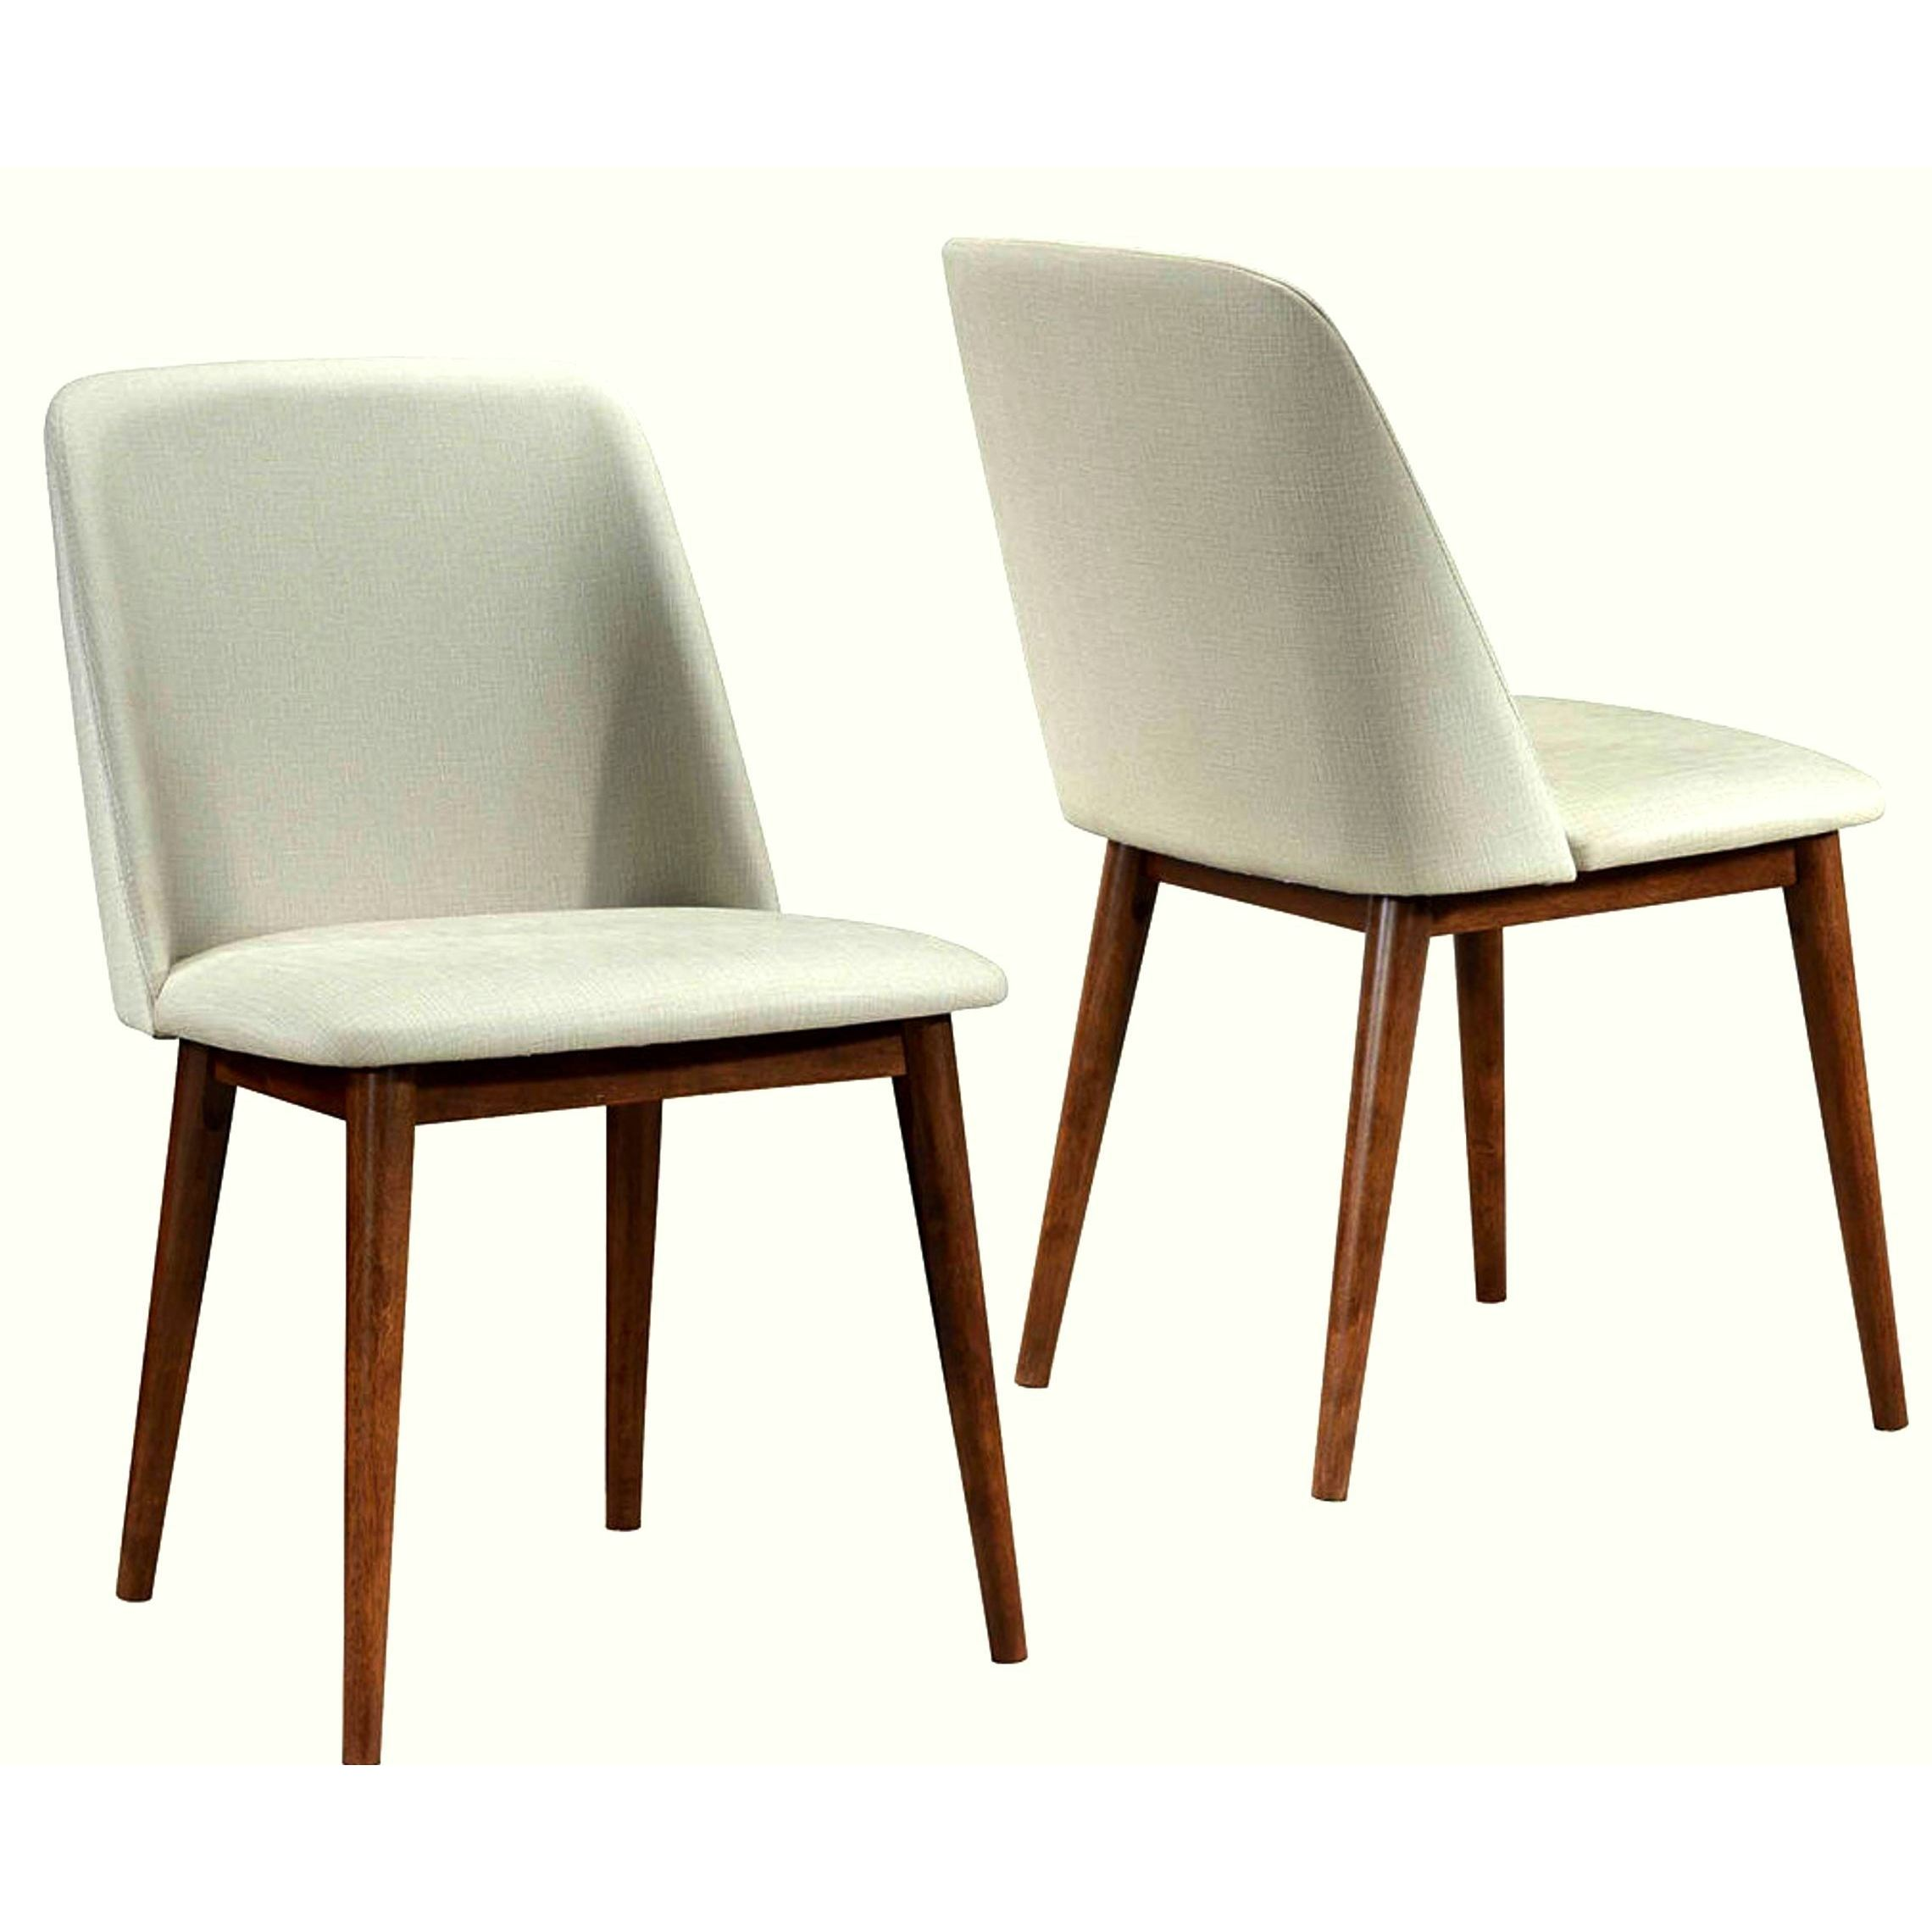 Shop soho mid century modern upholstered dining chairs set of 2 free shipping today overstock com 10789572